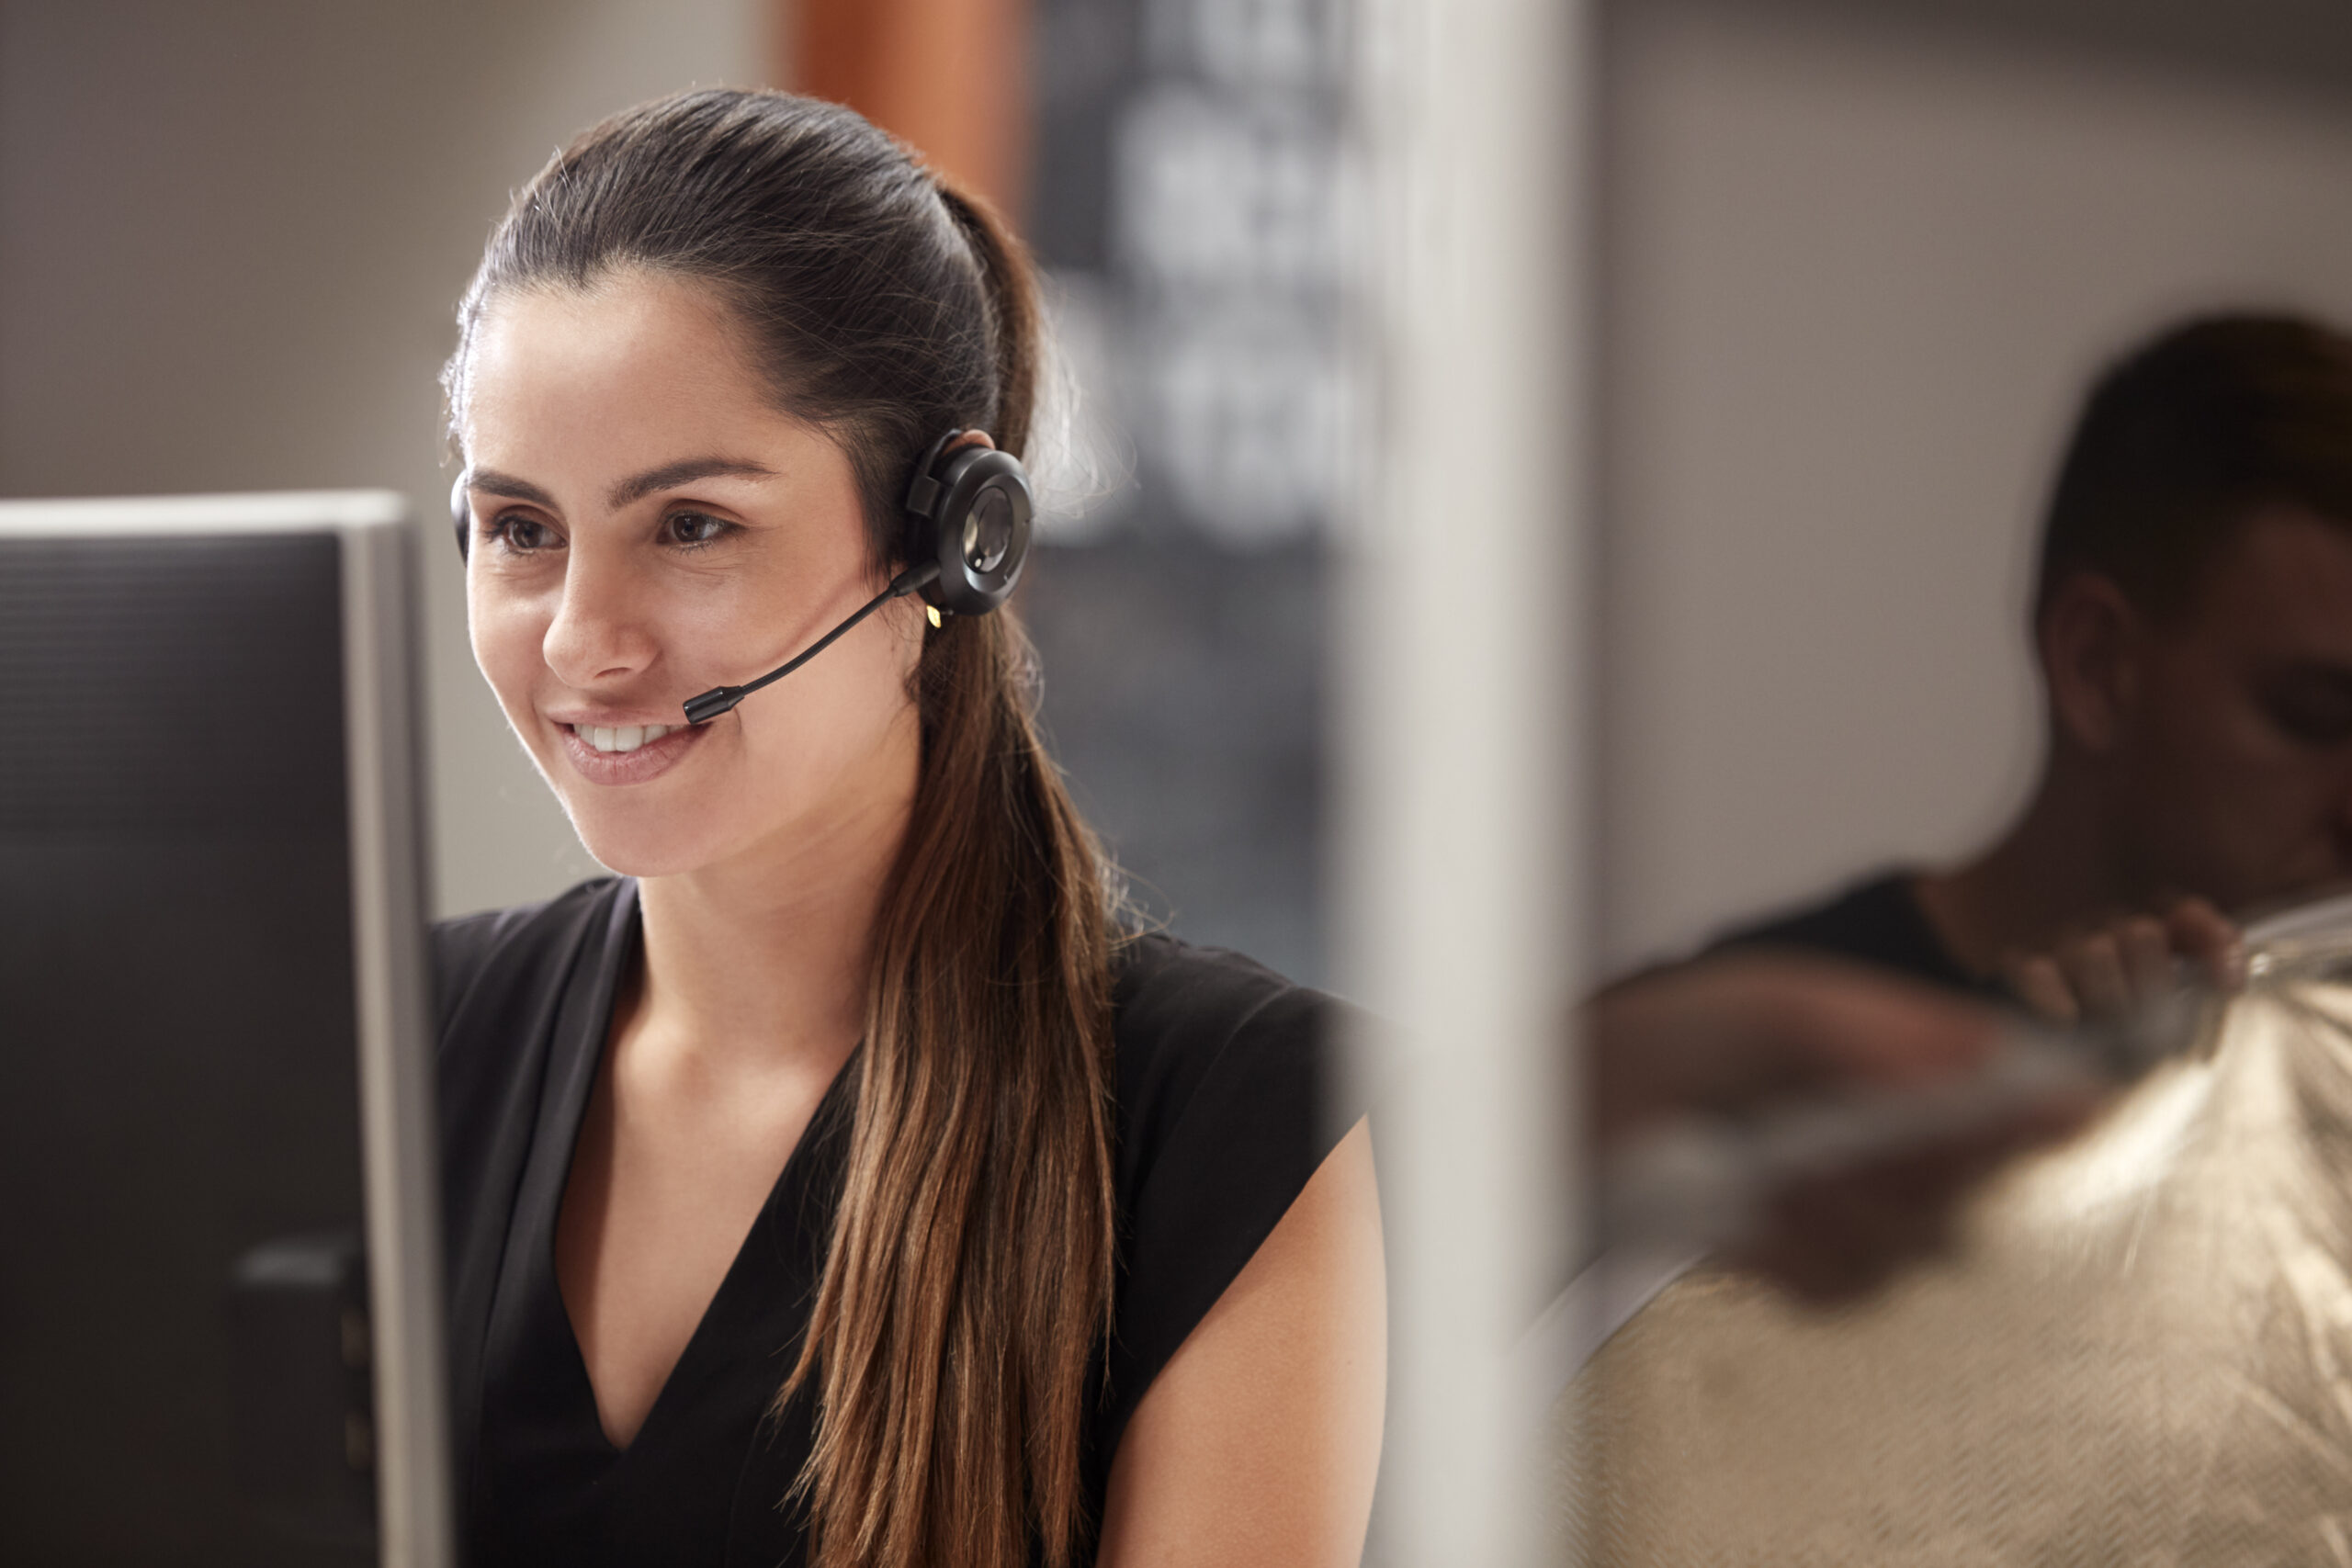 Female Customer Services Agent Working At Desk In Call Center